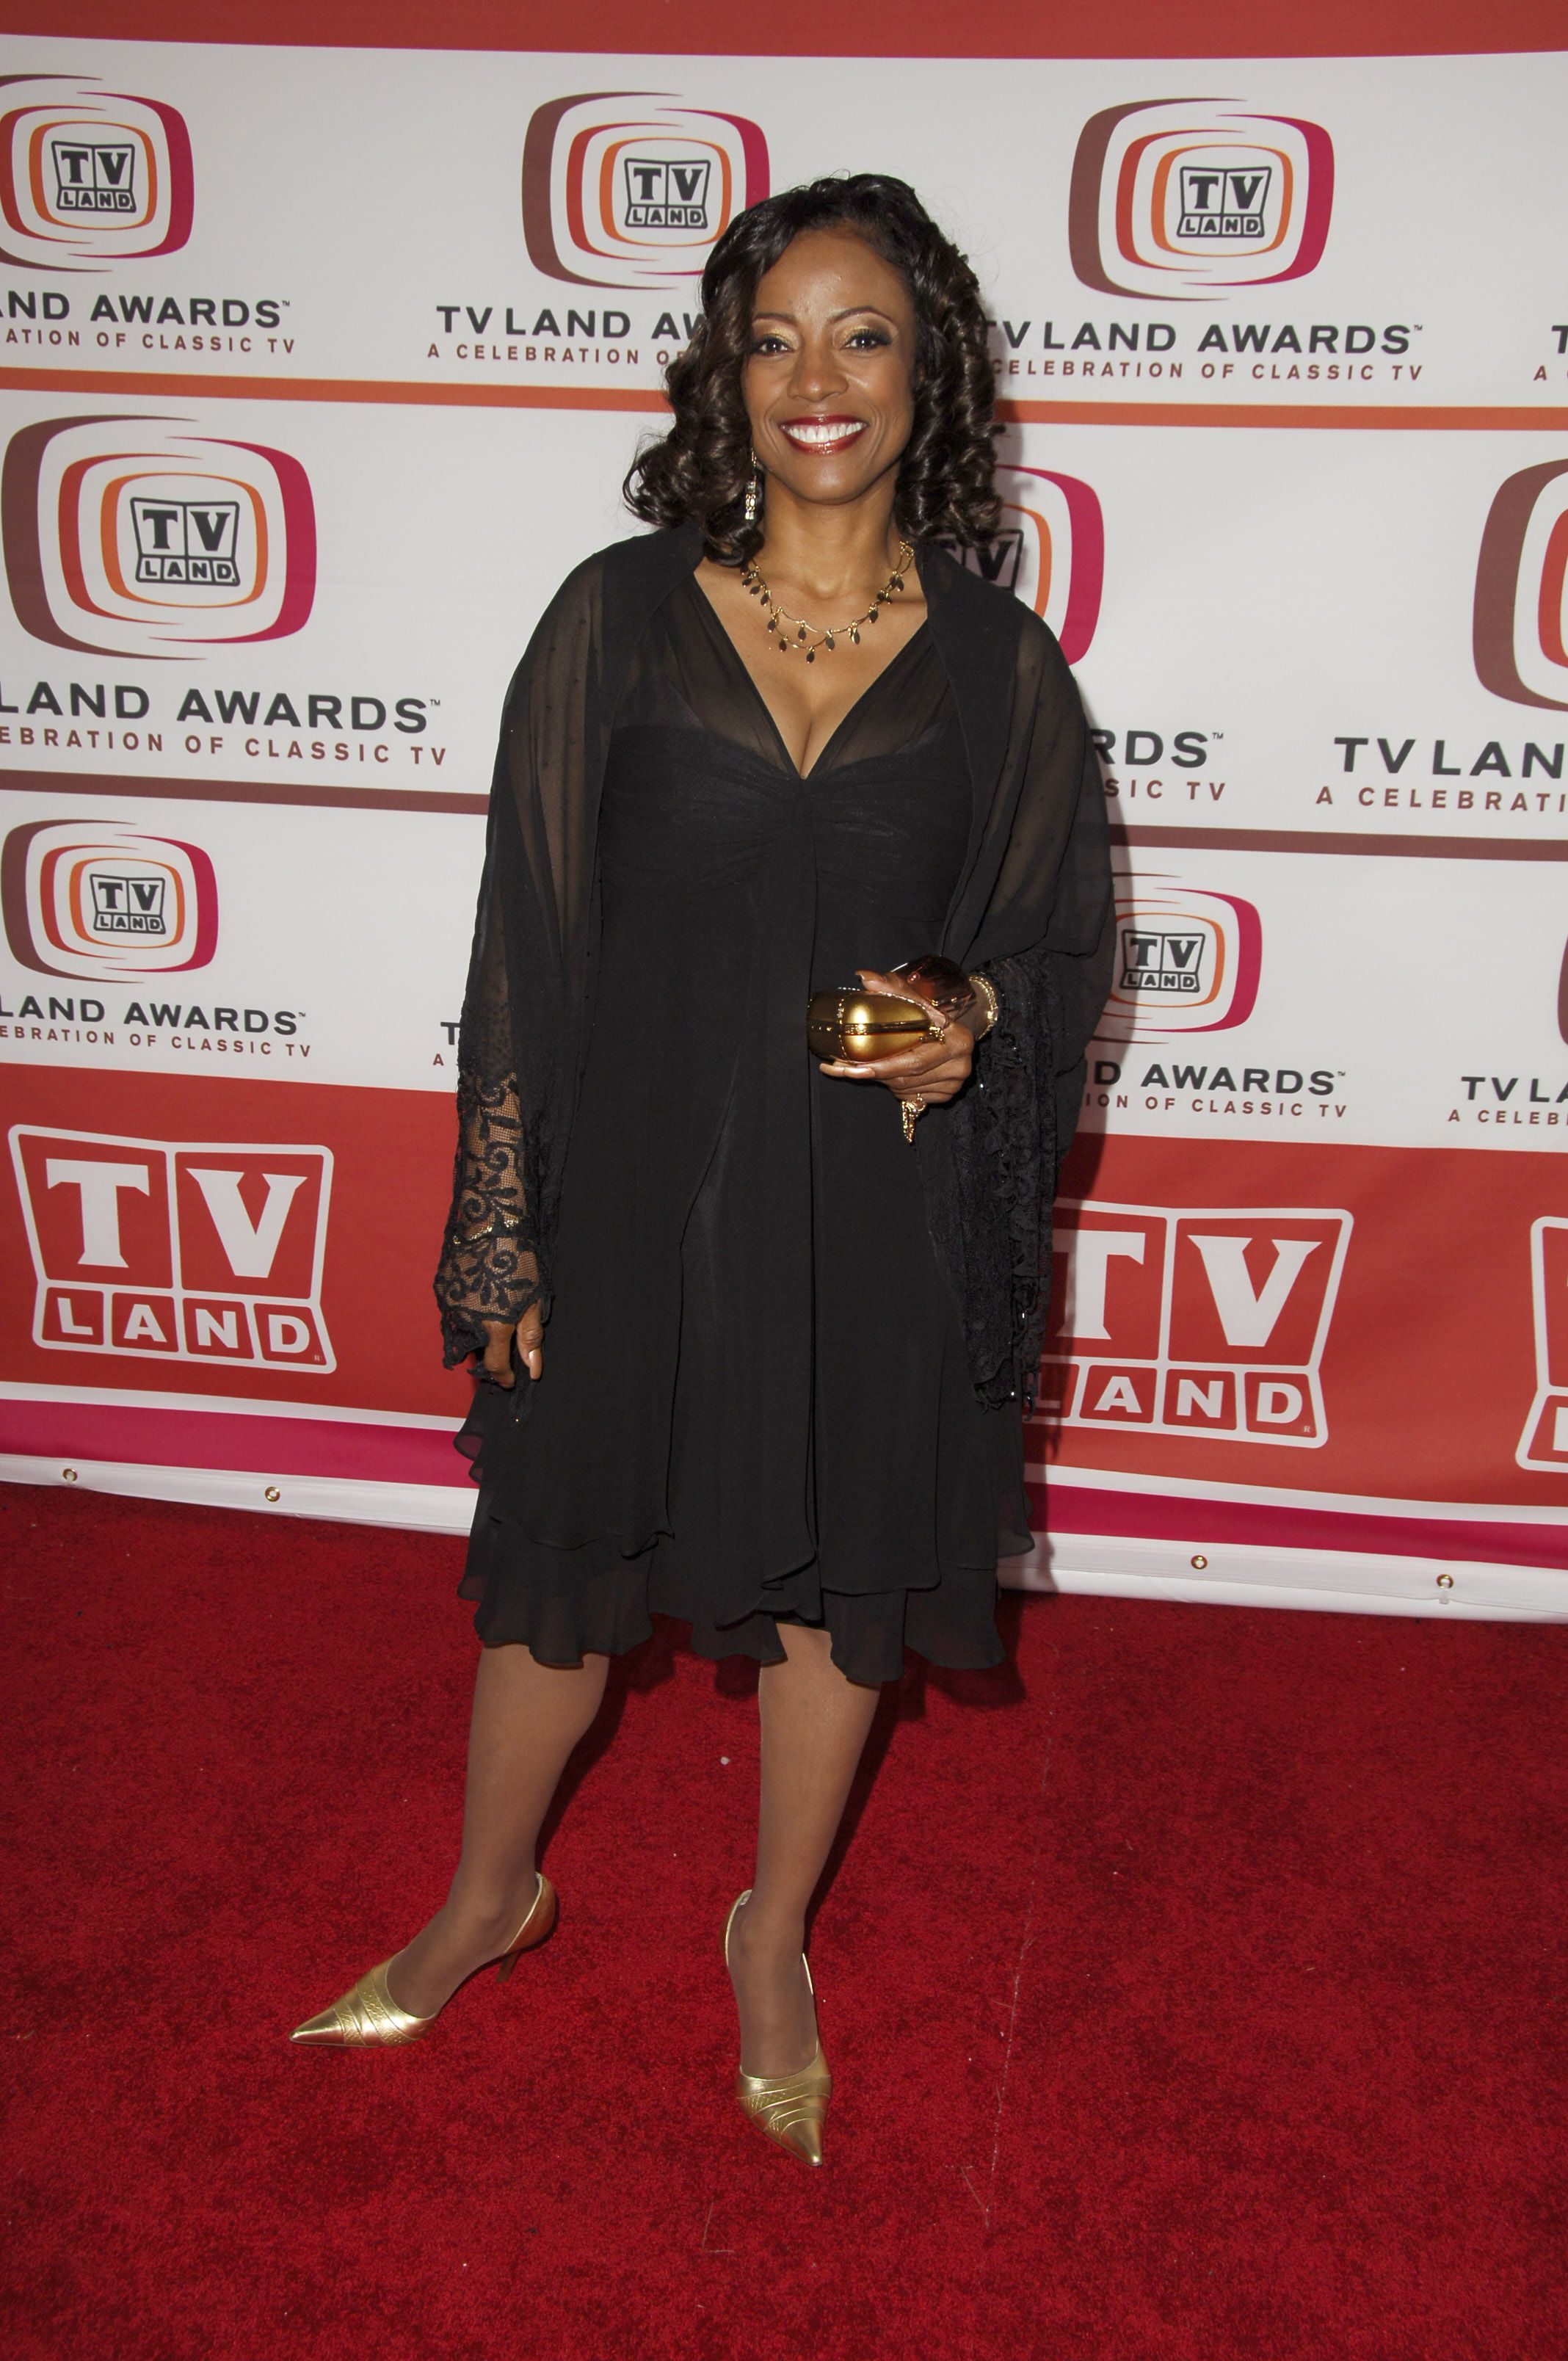 BernNadette Stanis at the 4th Annual TV Land Awards - Arrivals at Barker Hangar in Santa Monica on March 19, 2006 | Photo: Getty Images